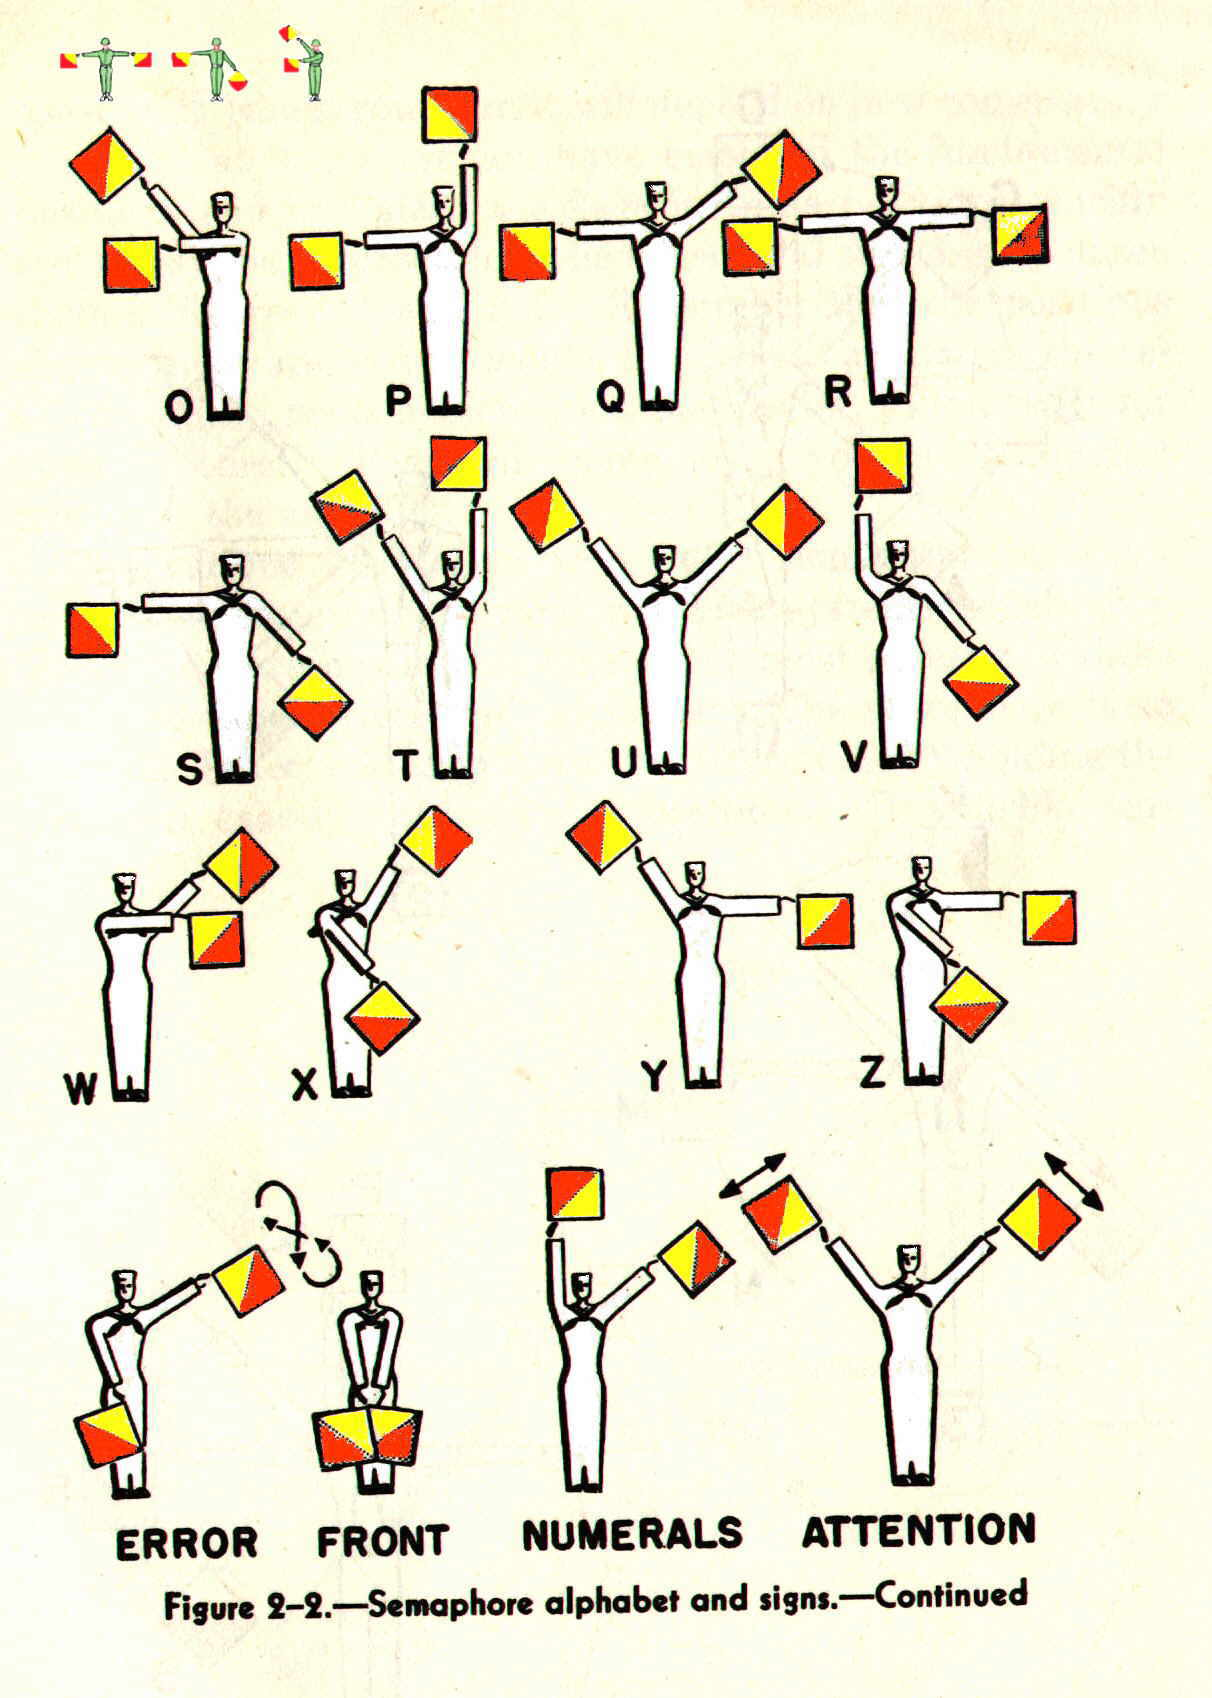 Royal Signals ... The Semaphore Wheel M to Z